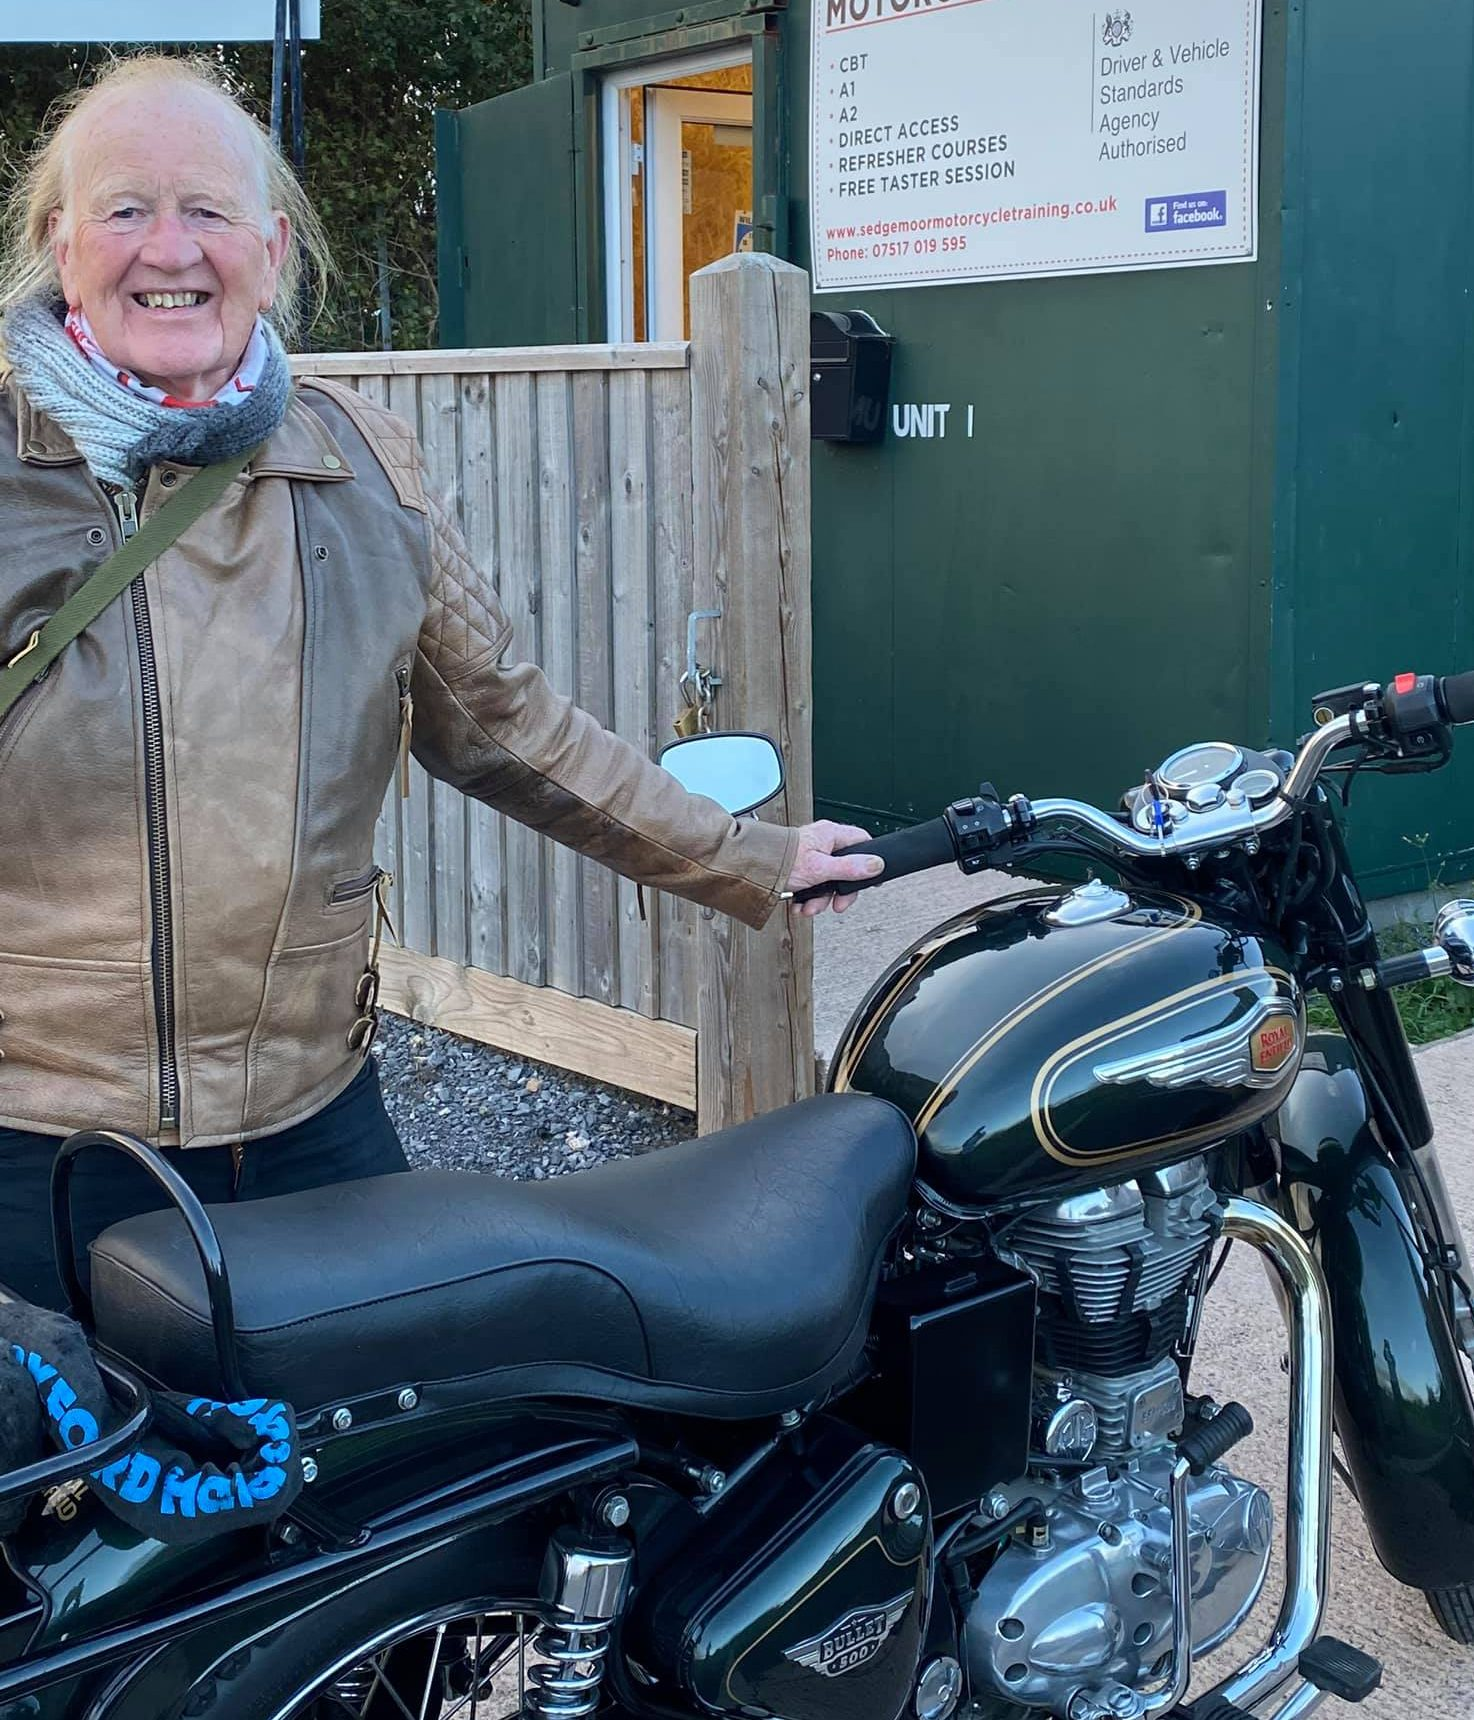 Martin Returns on His Royal Enfield